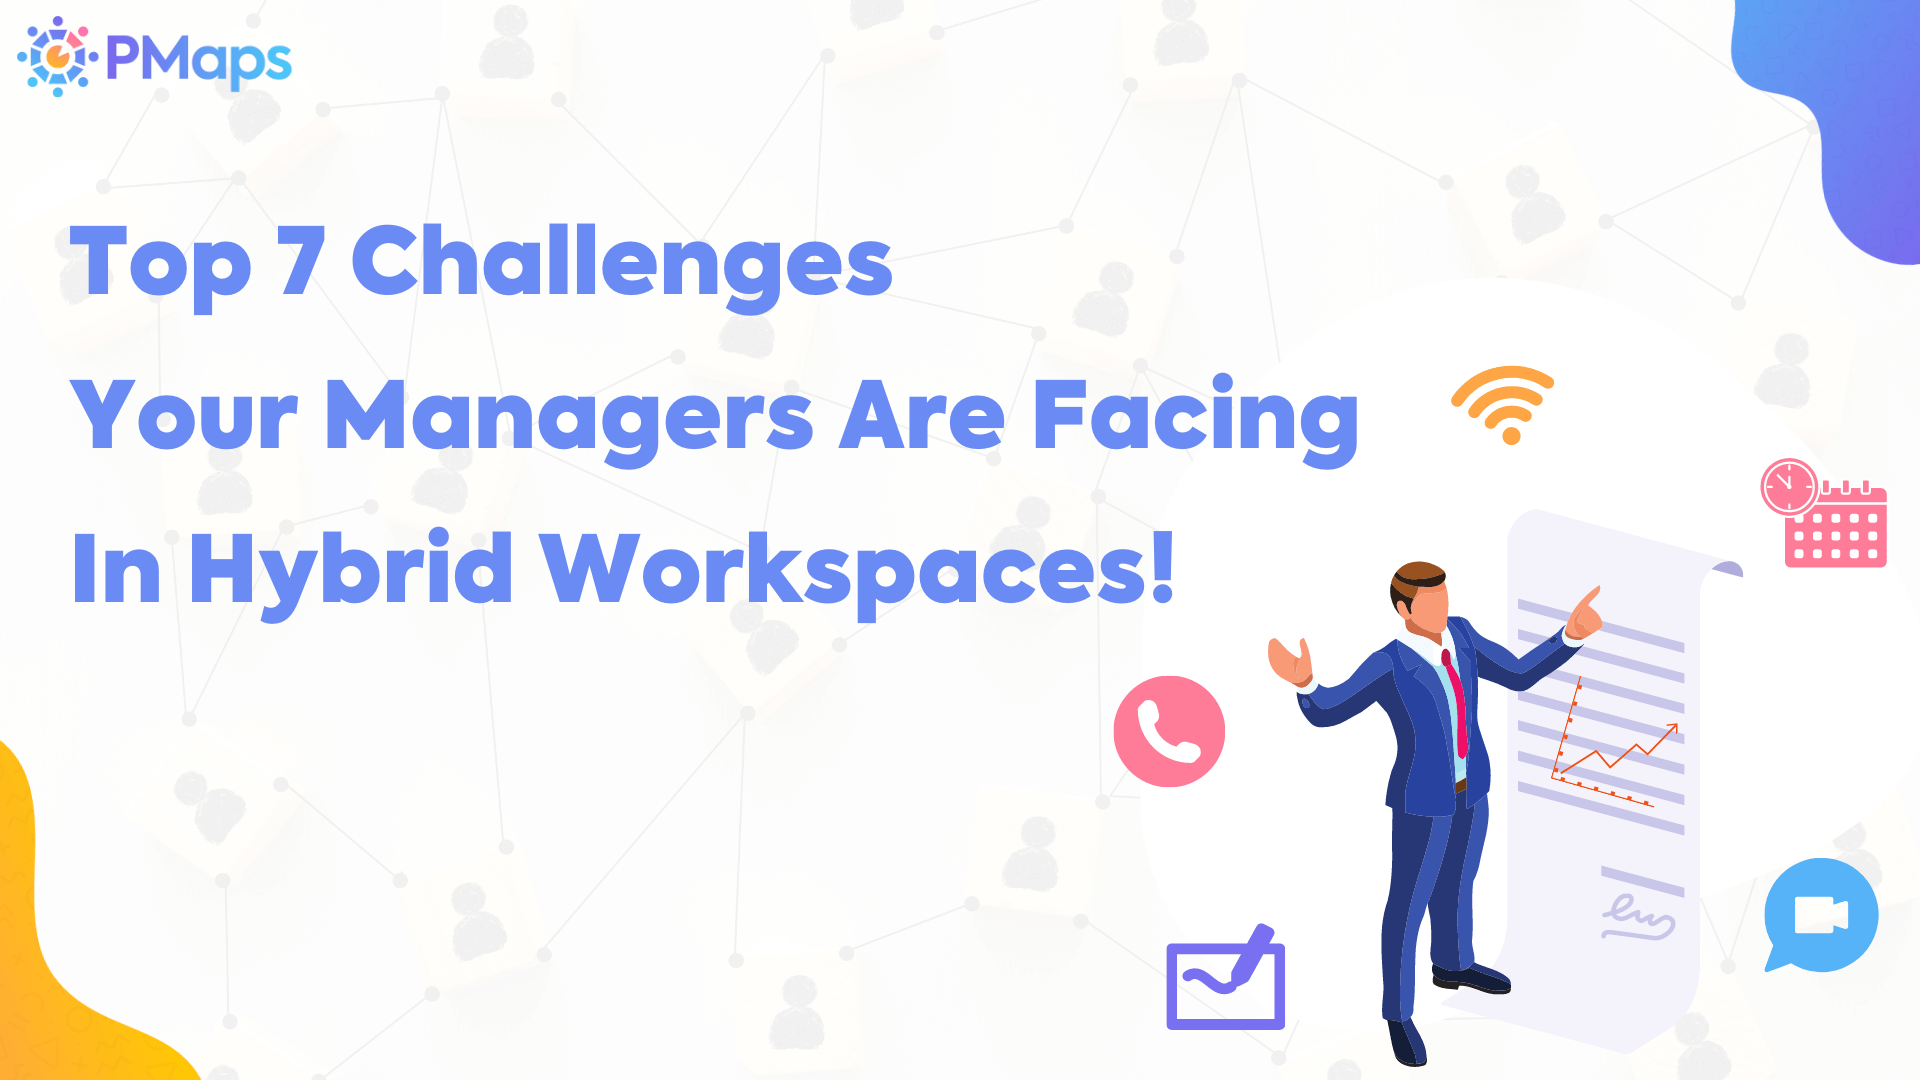 Top 7 Challenges Your Managers Are Facing In Hybrid Workspaces!